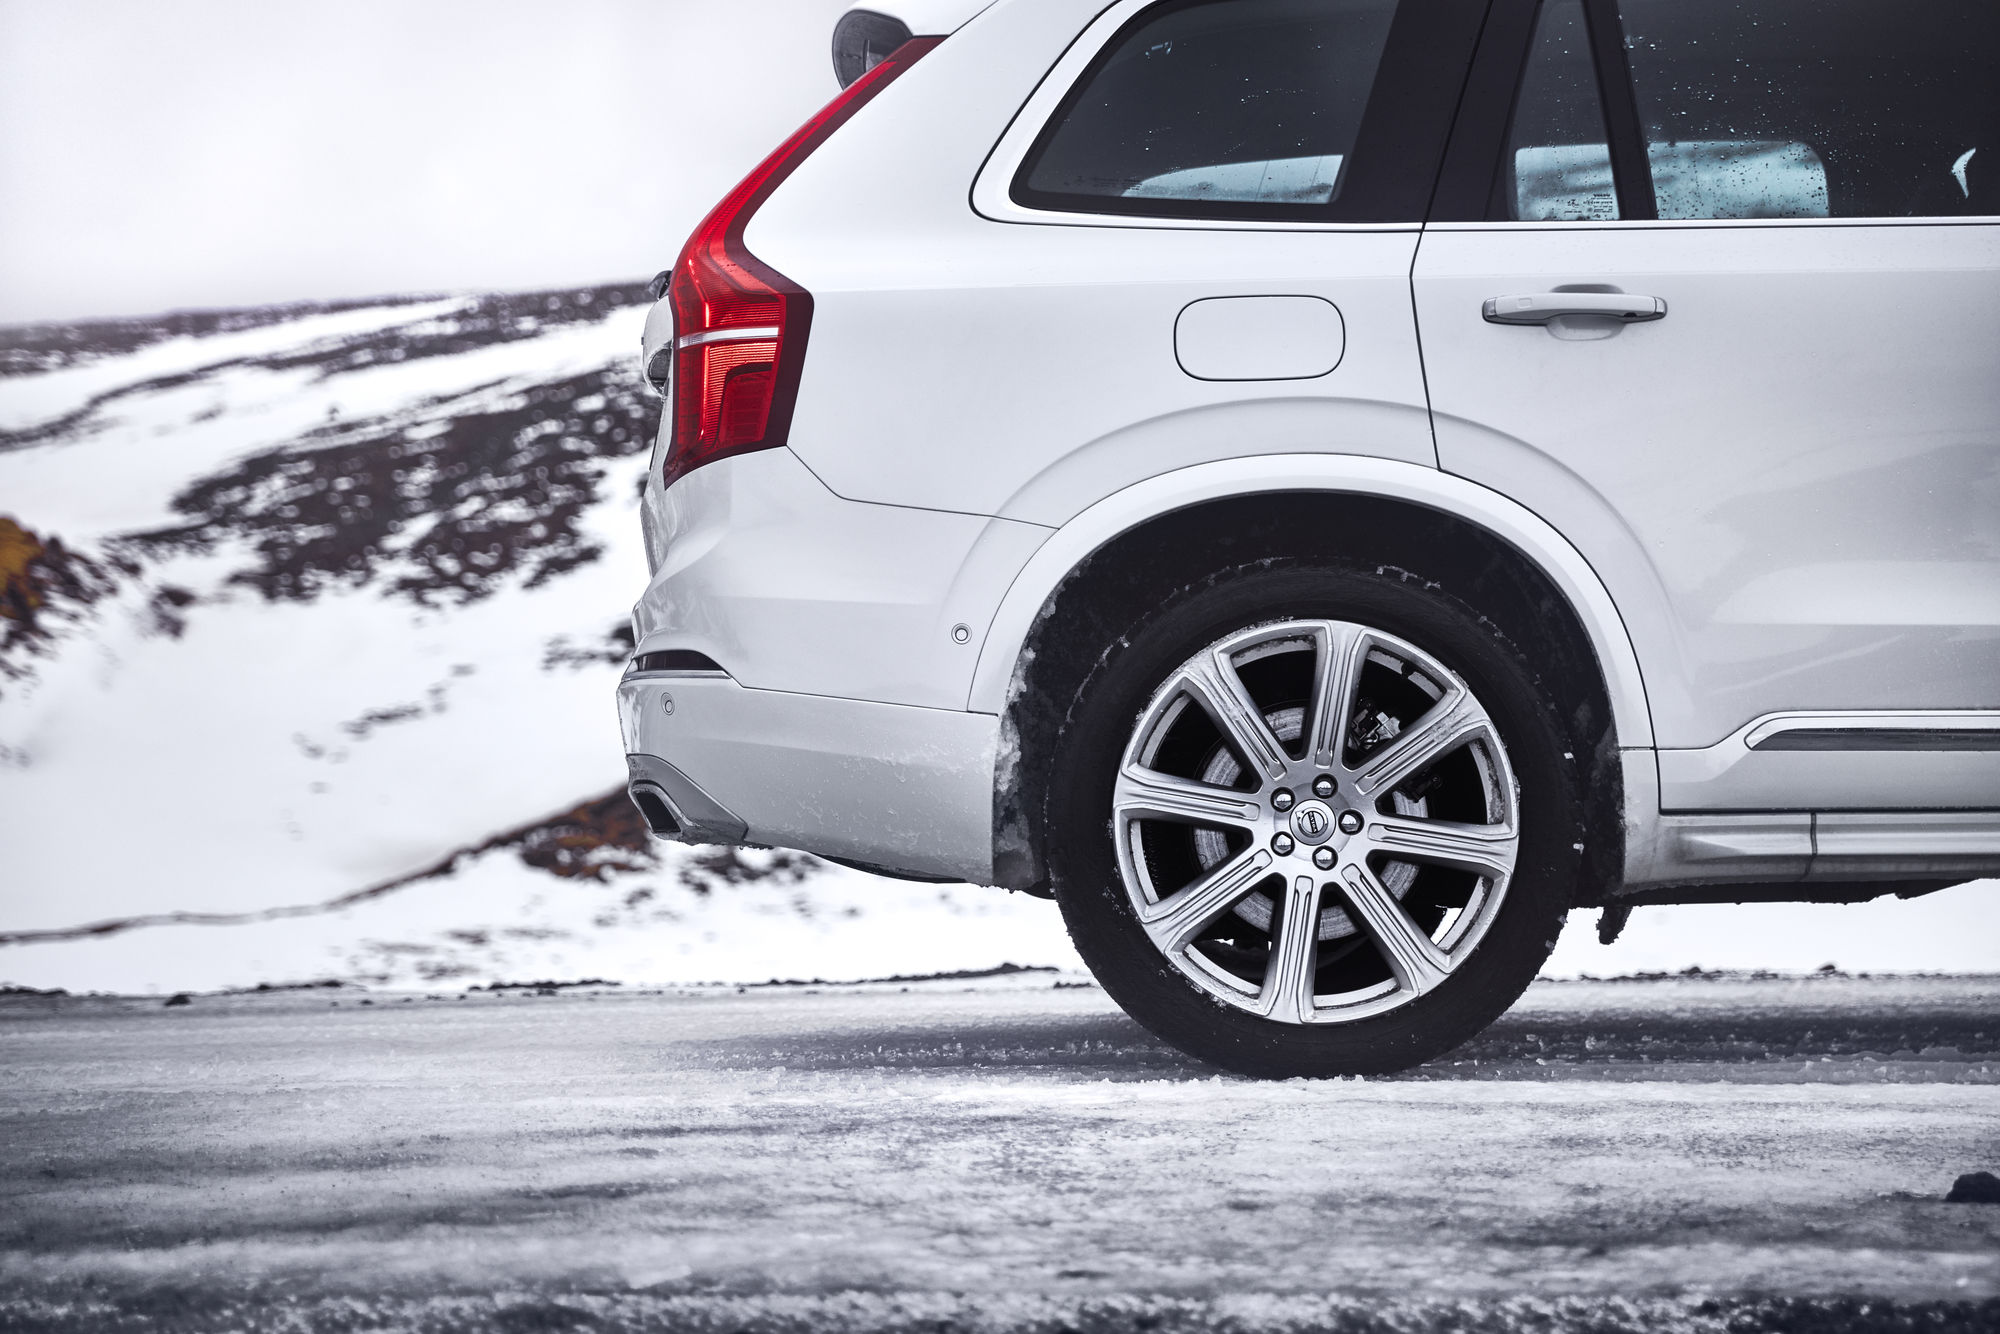 VO_03873_Stendahls_MVMvinter2016_38 Winter 2017, XC90 T8 Inscription, 707 Crystal White Pearl, 21 8-Spoke Silver Diamond Cut Alloy Wheel \250C 174.jpg